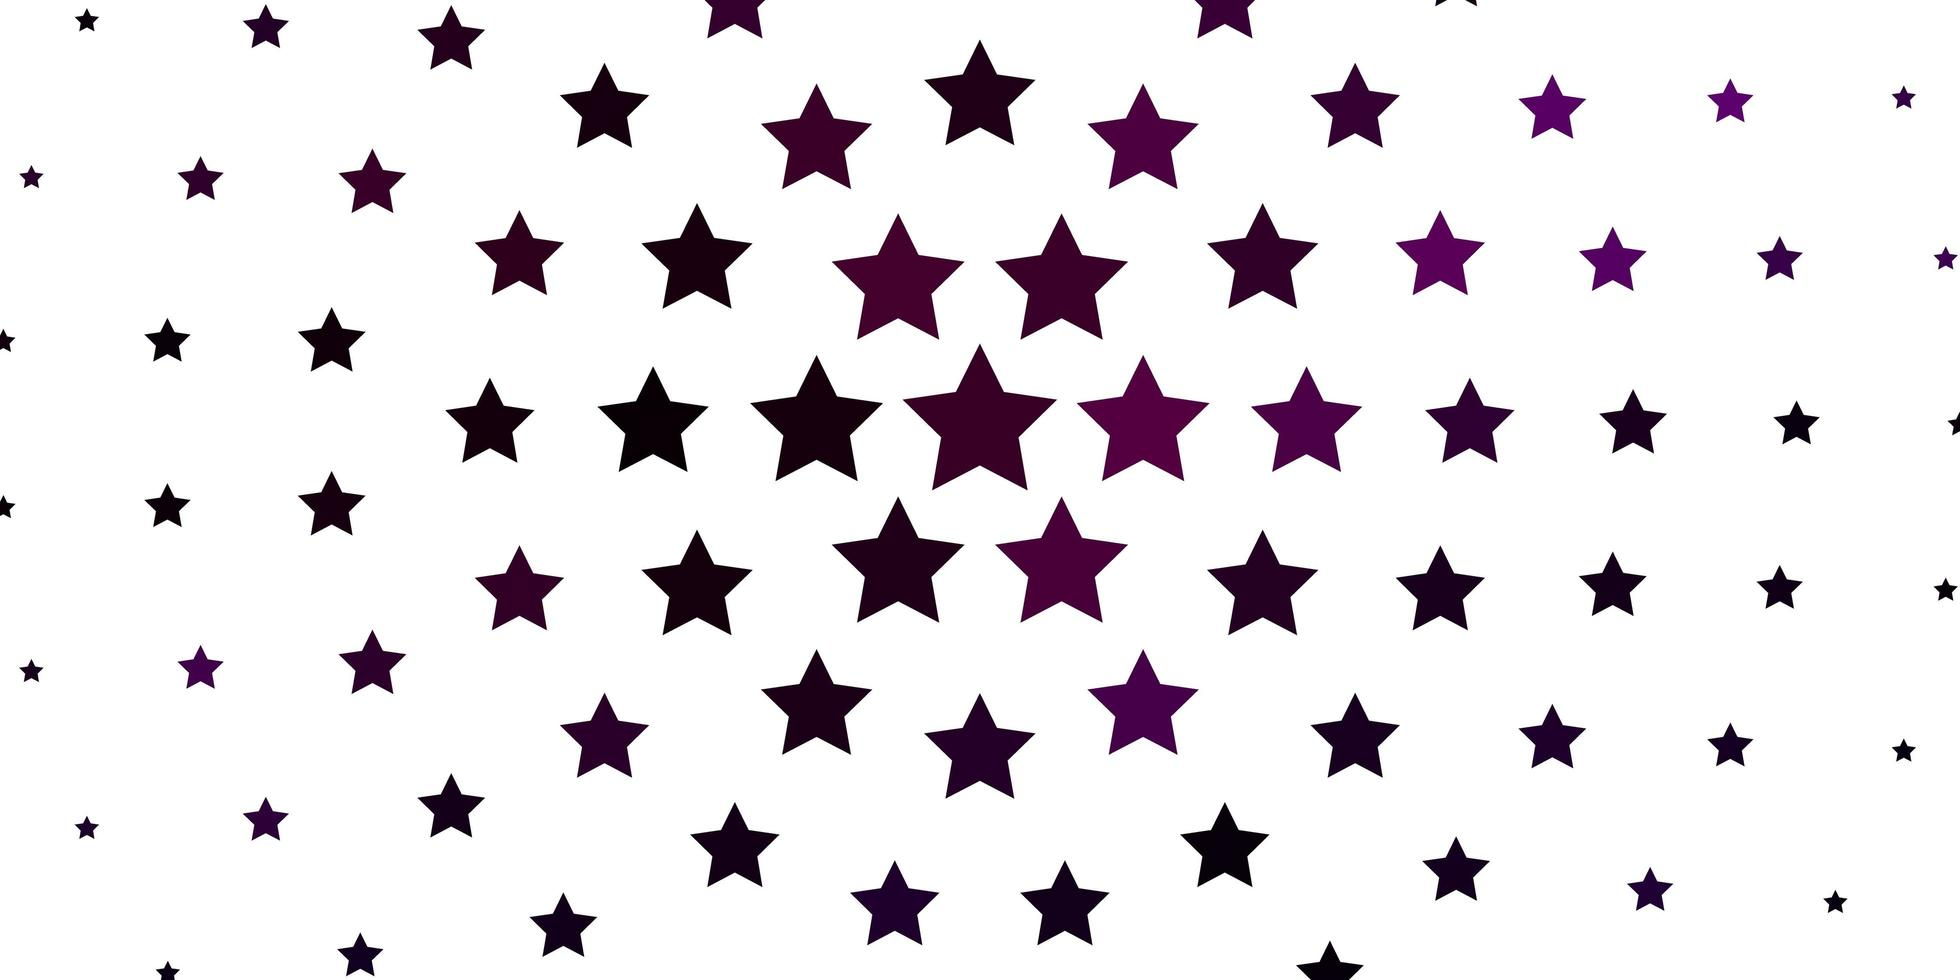 Dark pattern with abstract stars. vector